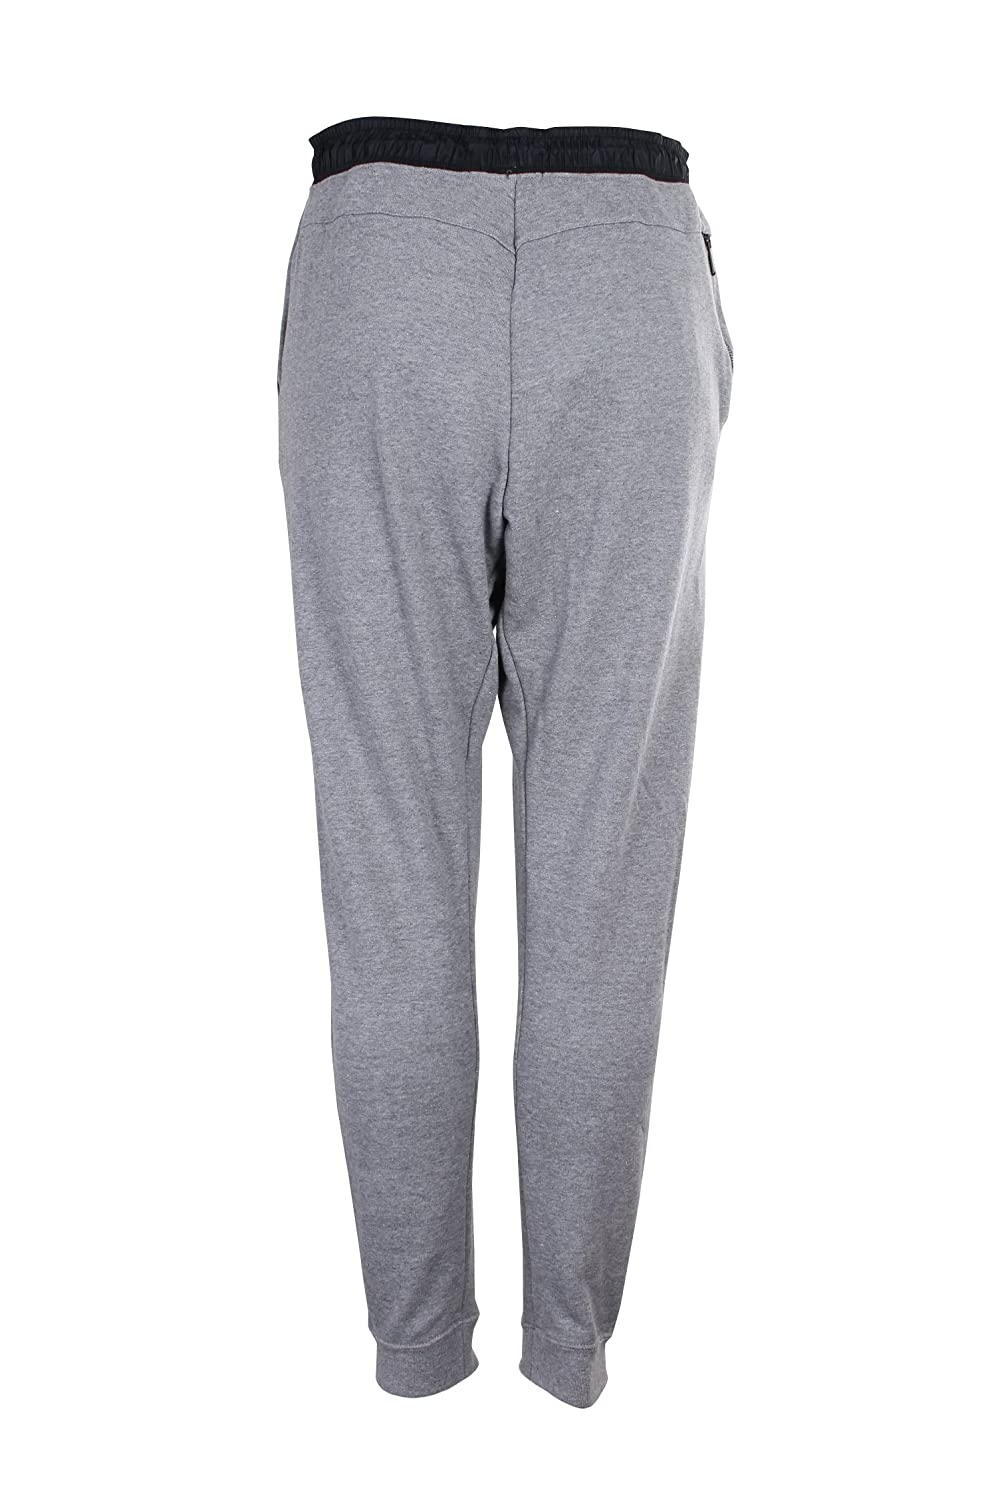 714f06d89d72 Nike Mens NSW Modern Jogger Sweatpants at Amazon Men s Clothing store